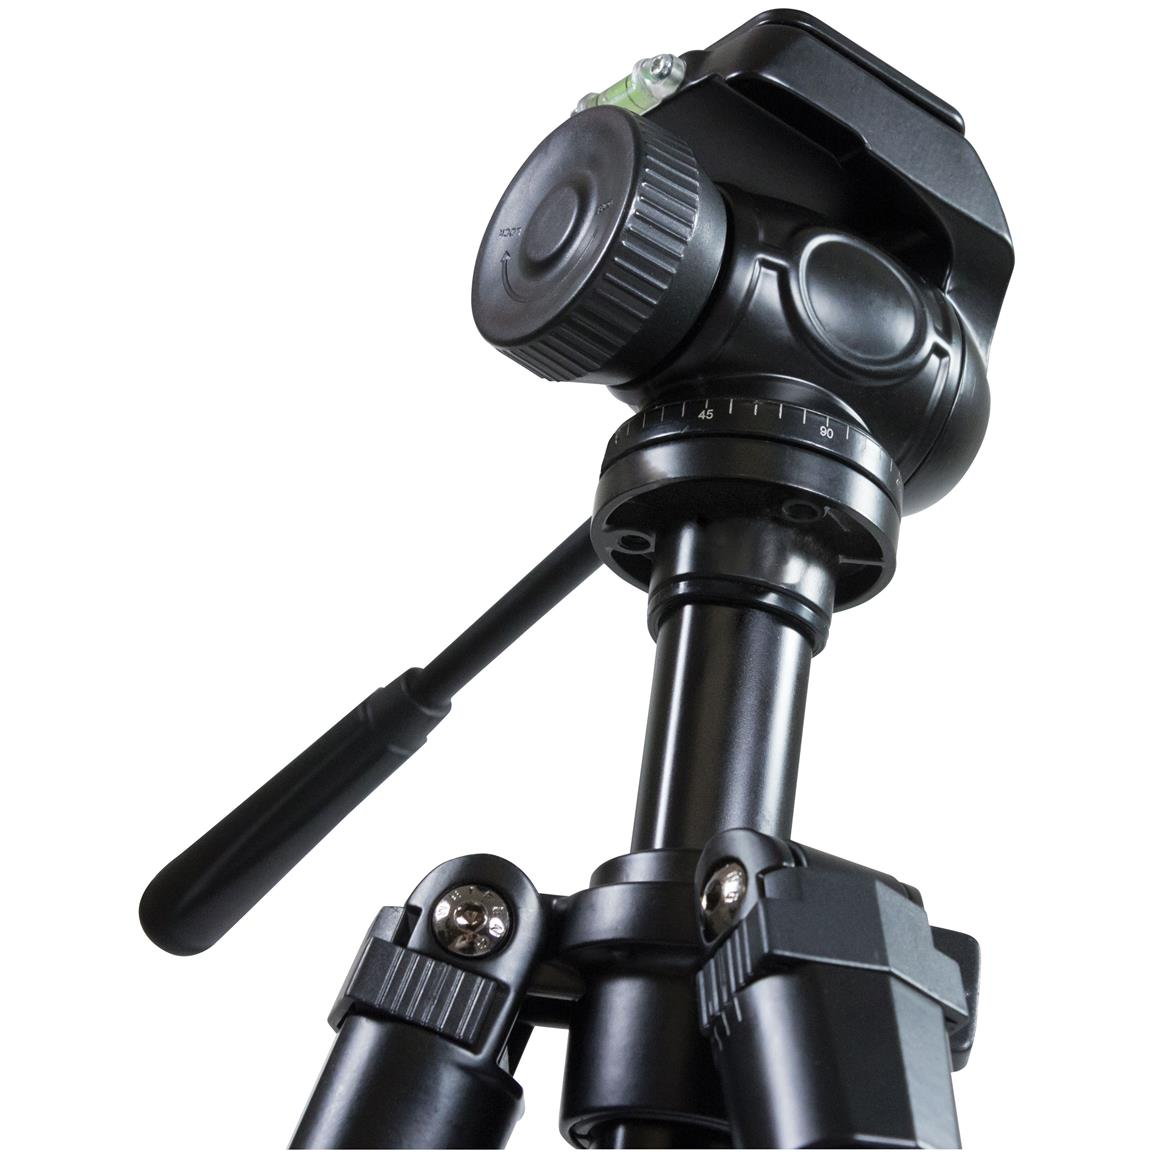 A 2-way fluid pan head makes for easy attachment and use of a spotting scope, binoculars, camera or a small telescope